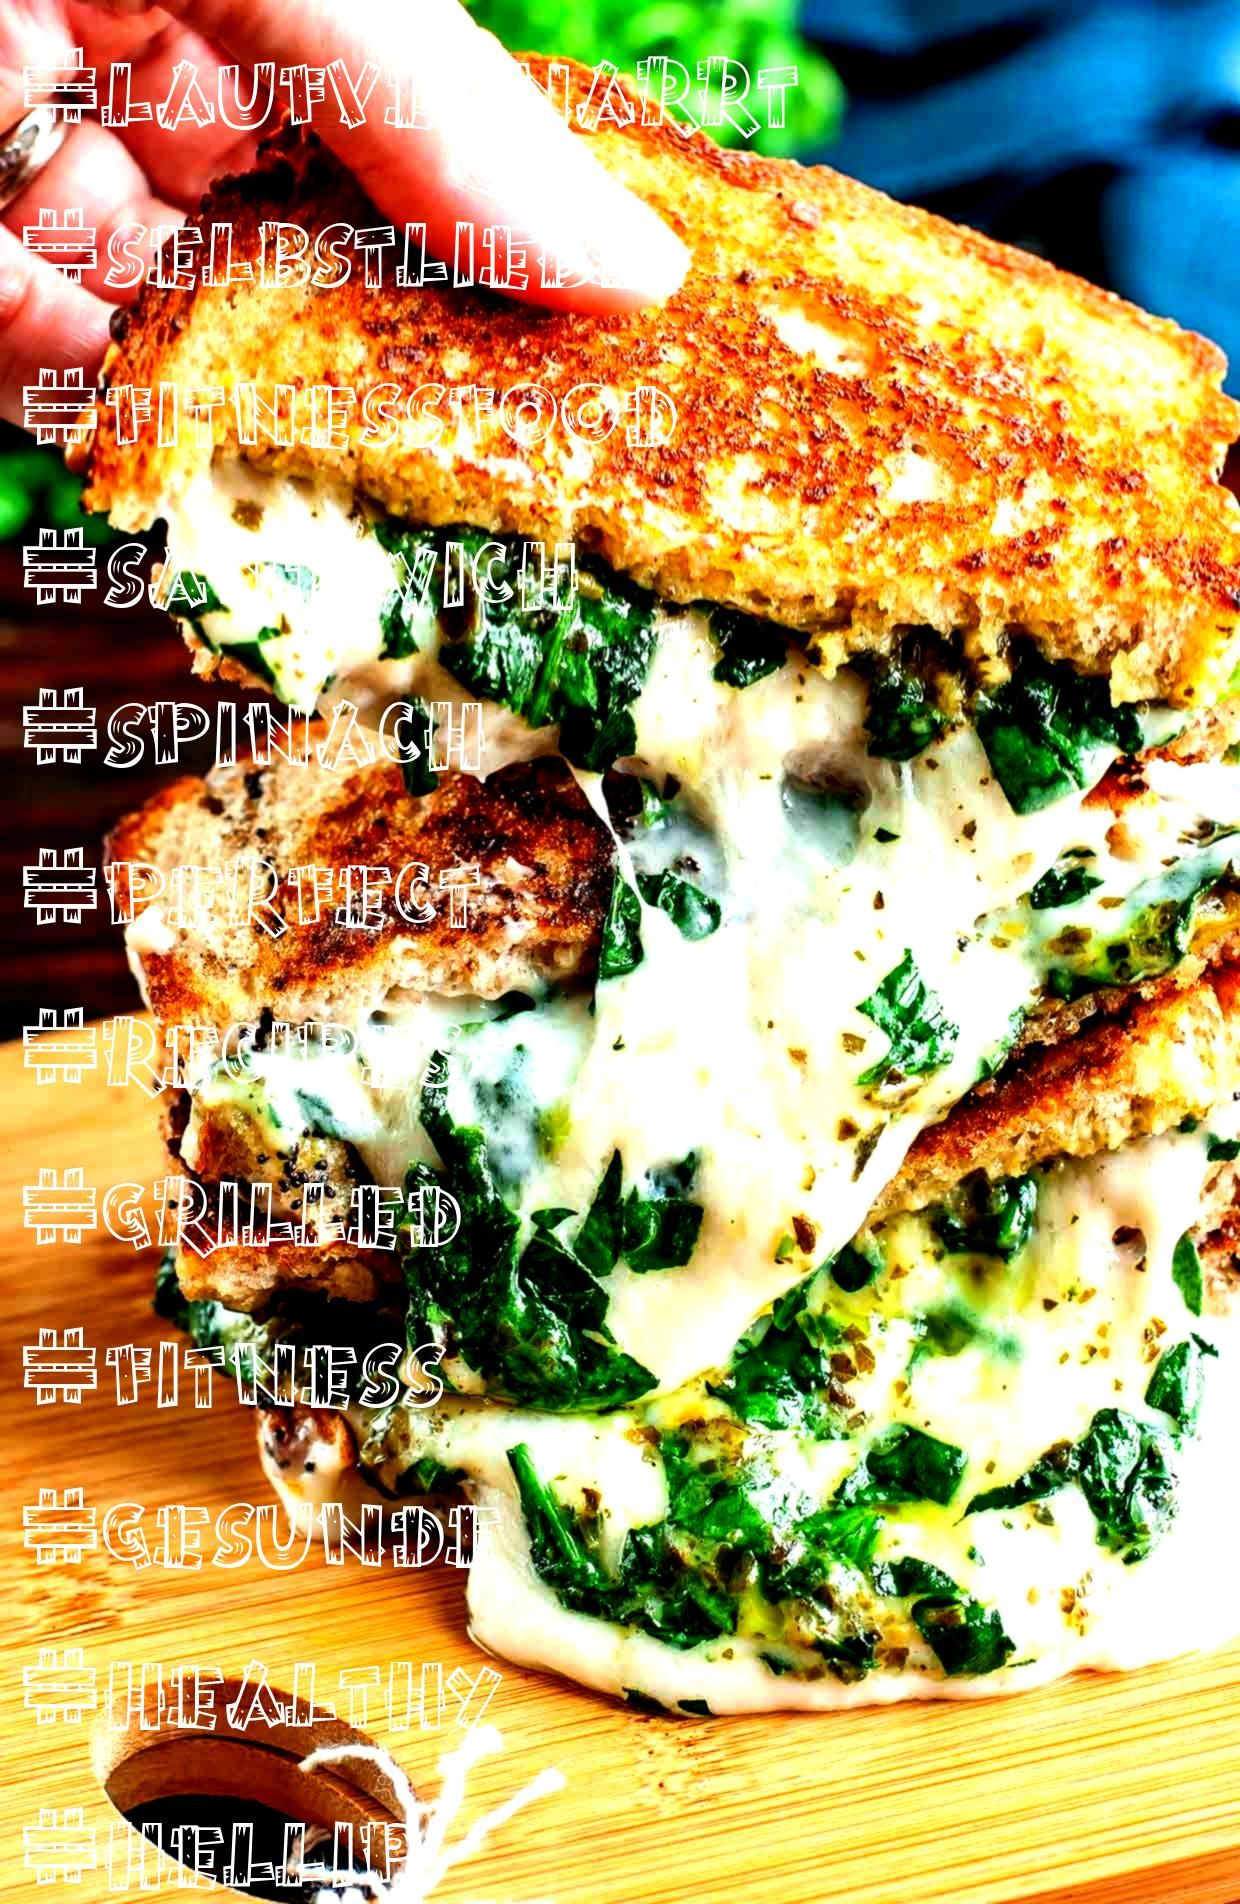 #laufvernarrt #selbstliebe #fitnessfood #sandwich #spinach #perfect #recipes #grilled #fitness #gesu...